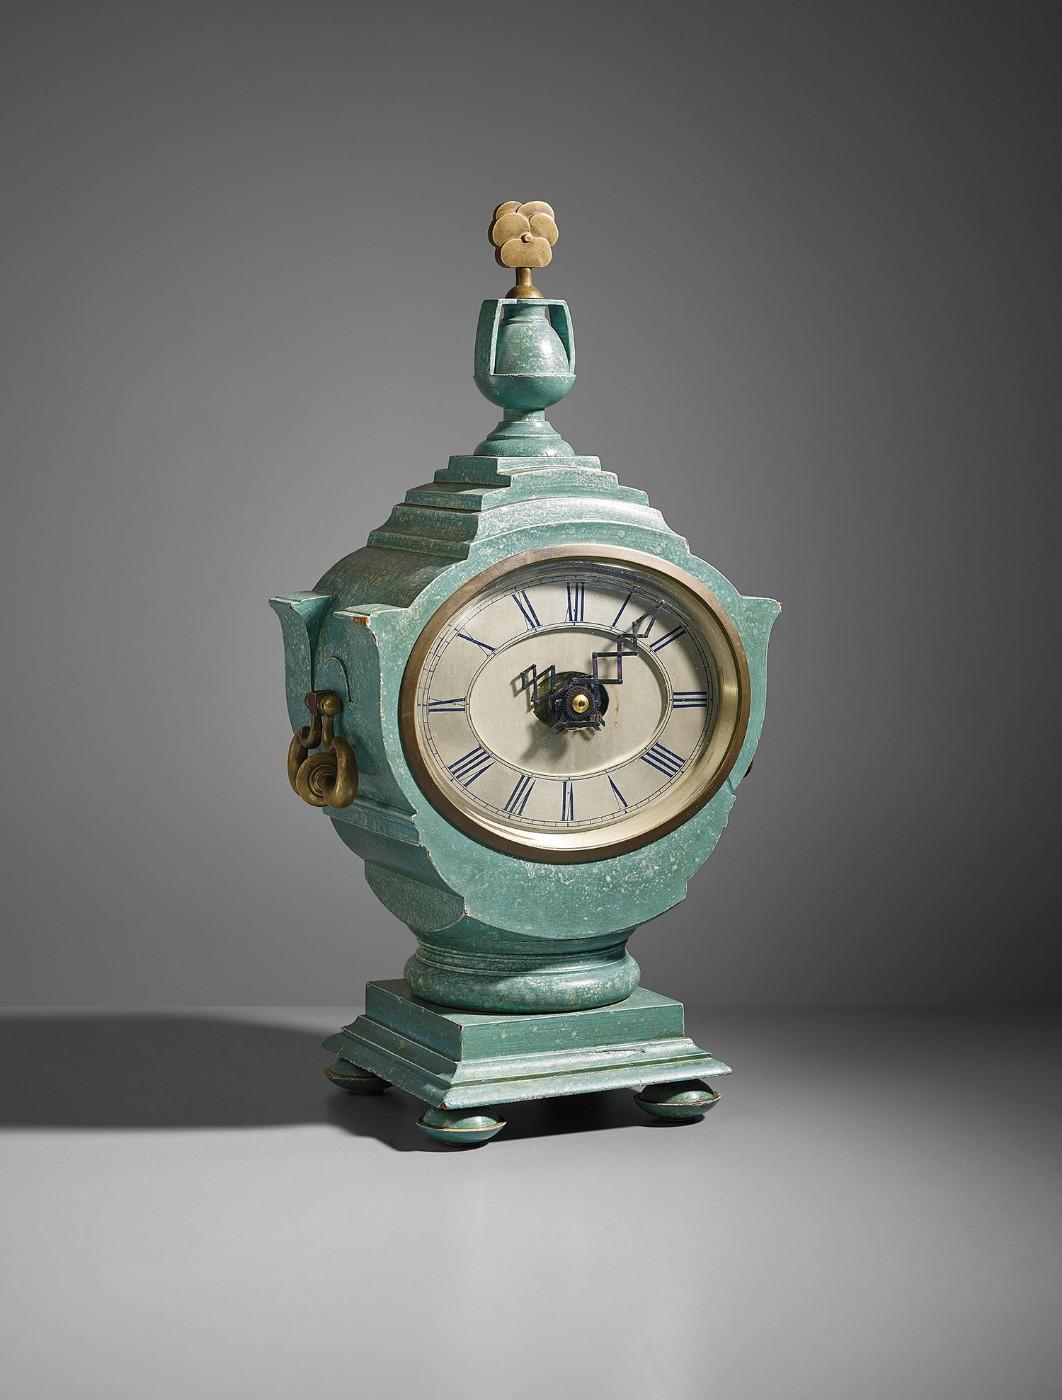 Sir Edwin Lutyens, Mantel clock, designed for Lady Willingdon, the Viceroy's House, New Delhi, circa 1930